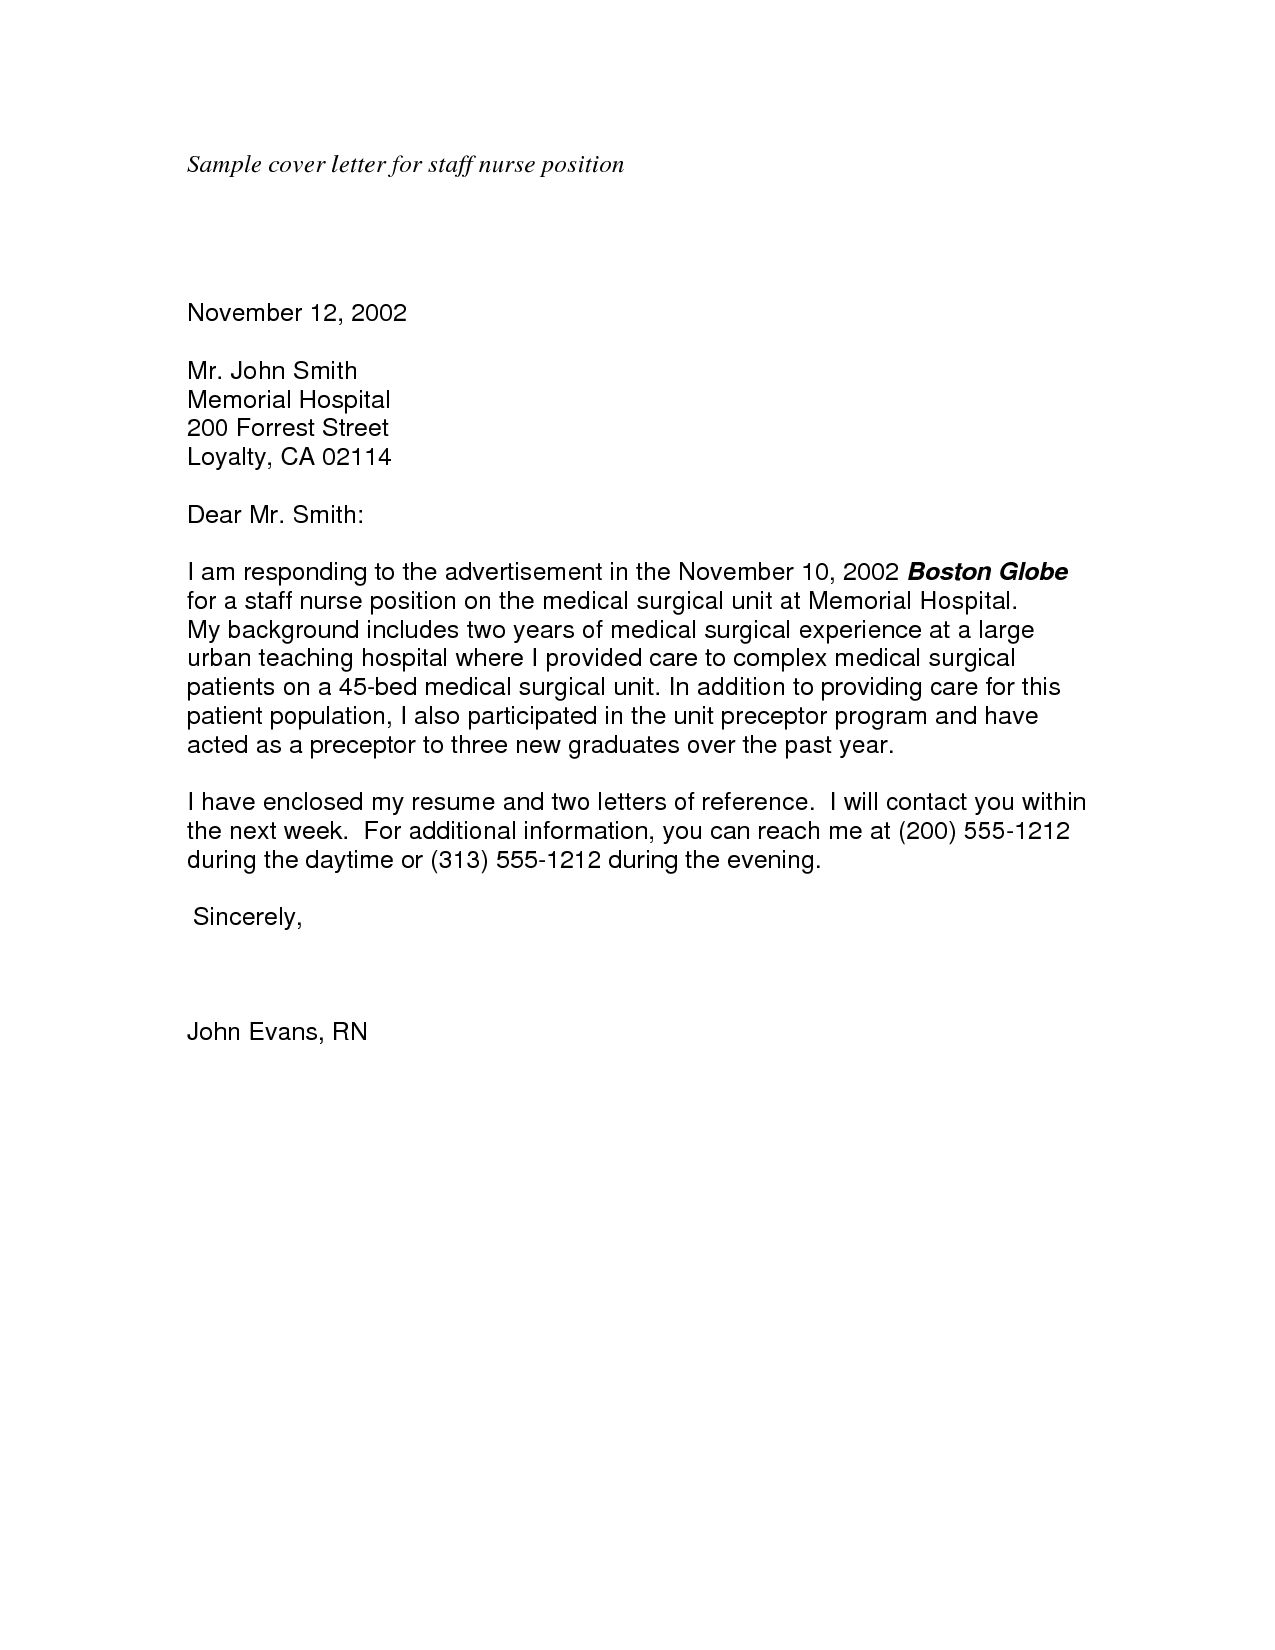 25 Application Cover Letter Job Cover Letter Cover Letter For